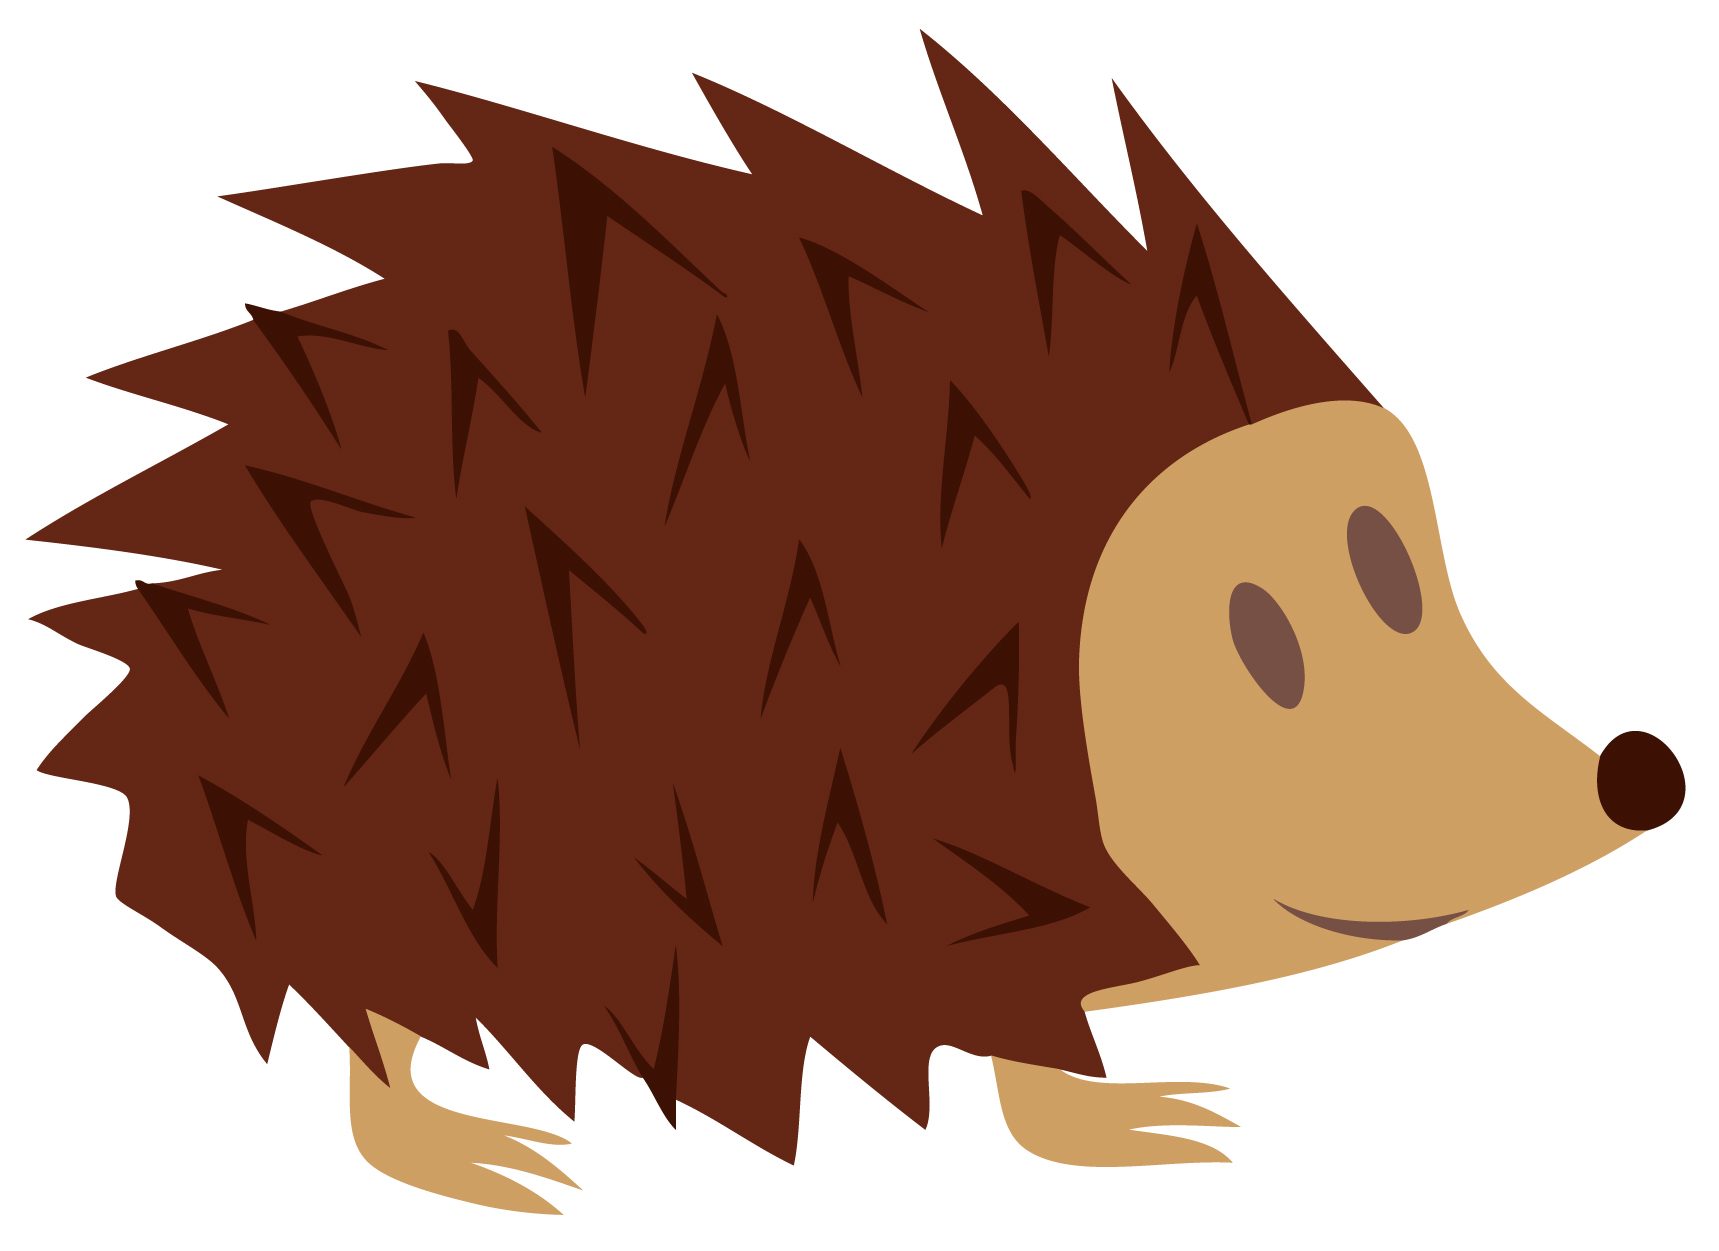 hedgehog free early years   primary teaching resources hedgehog clipart black and white hedgehog clipart free